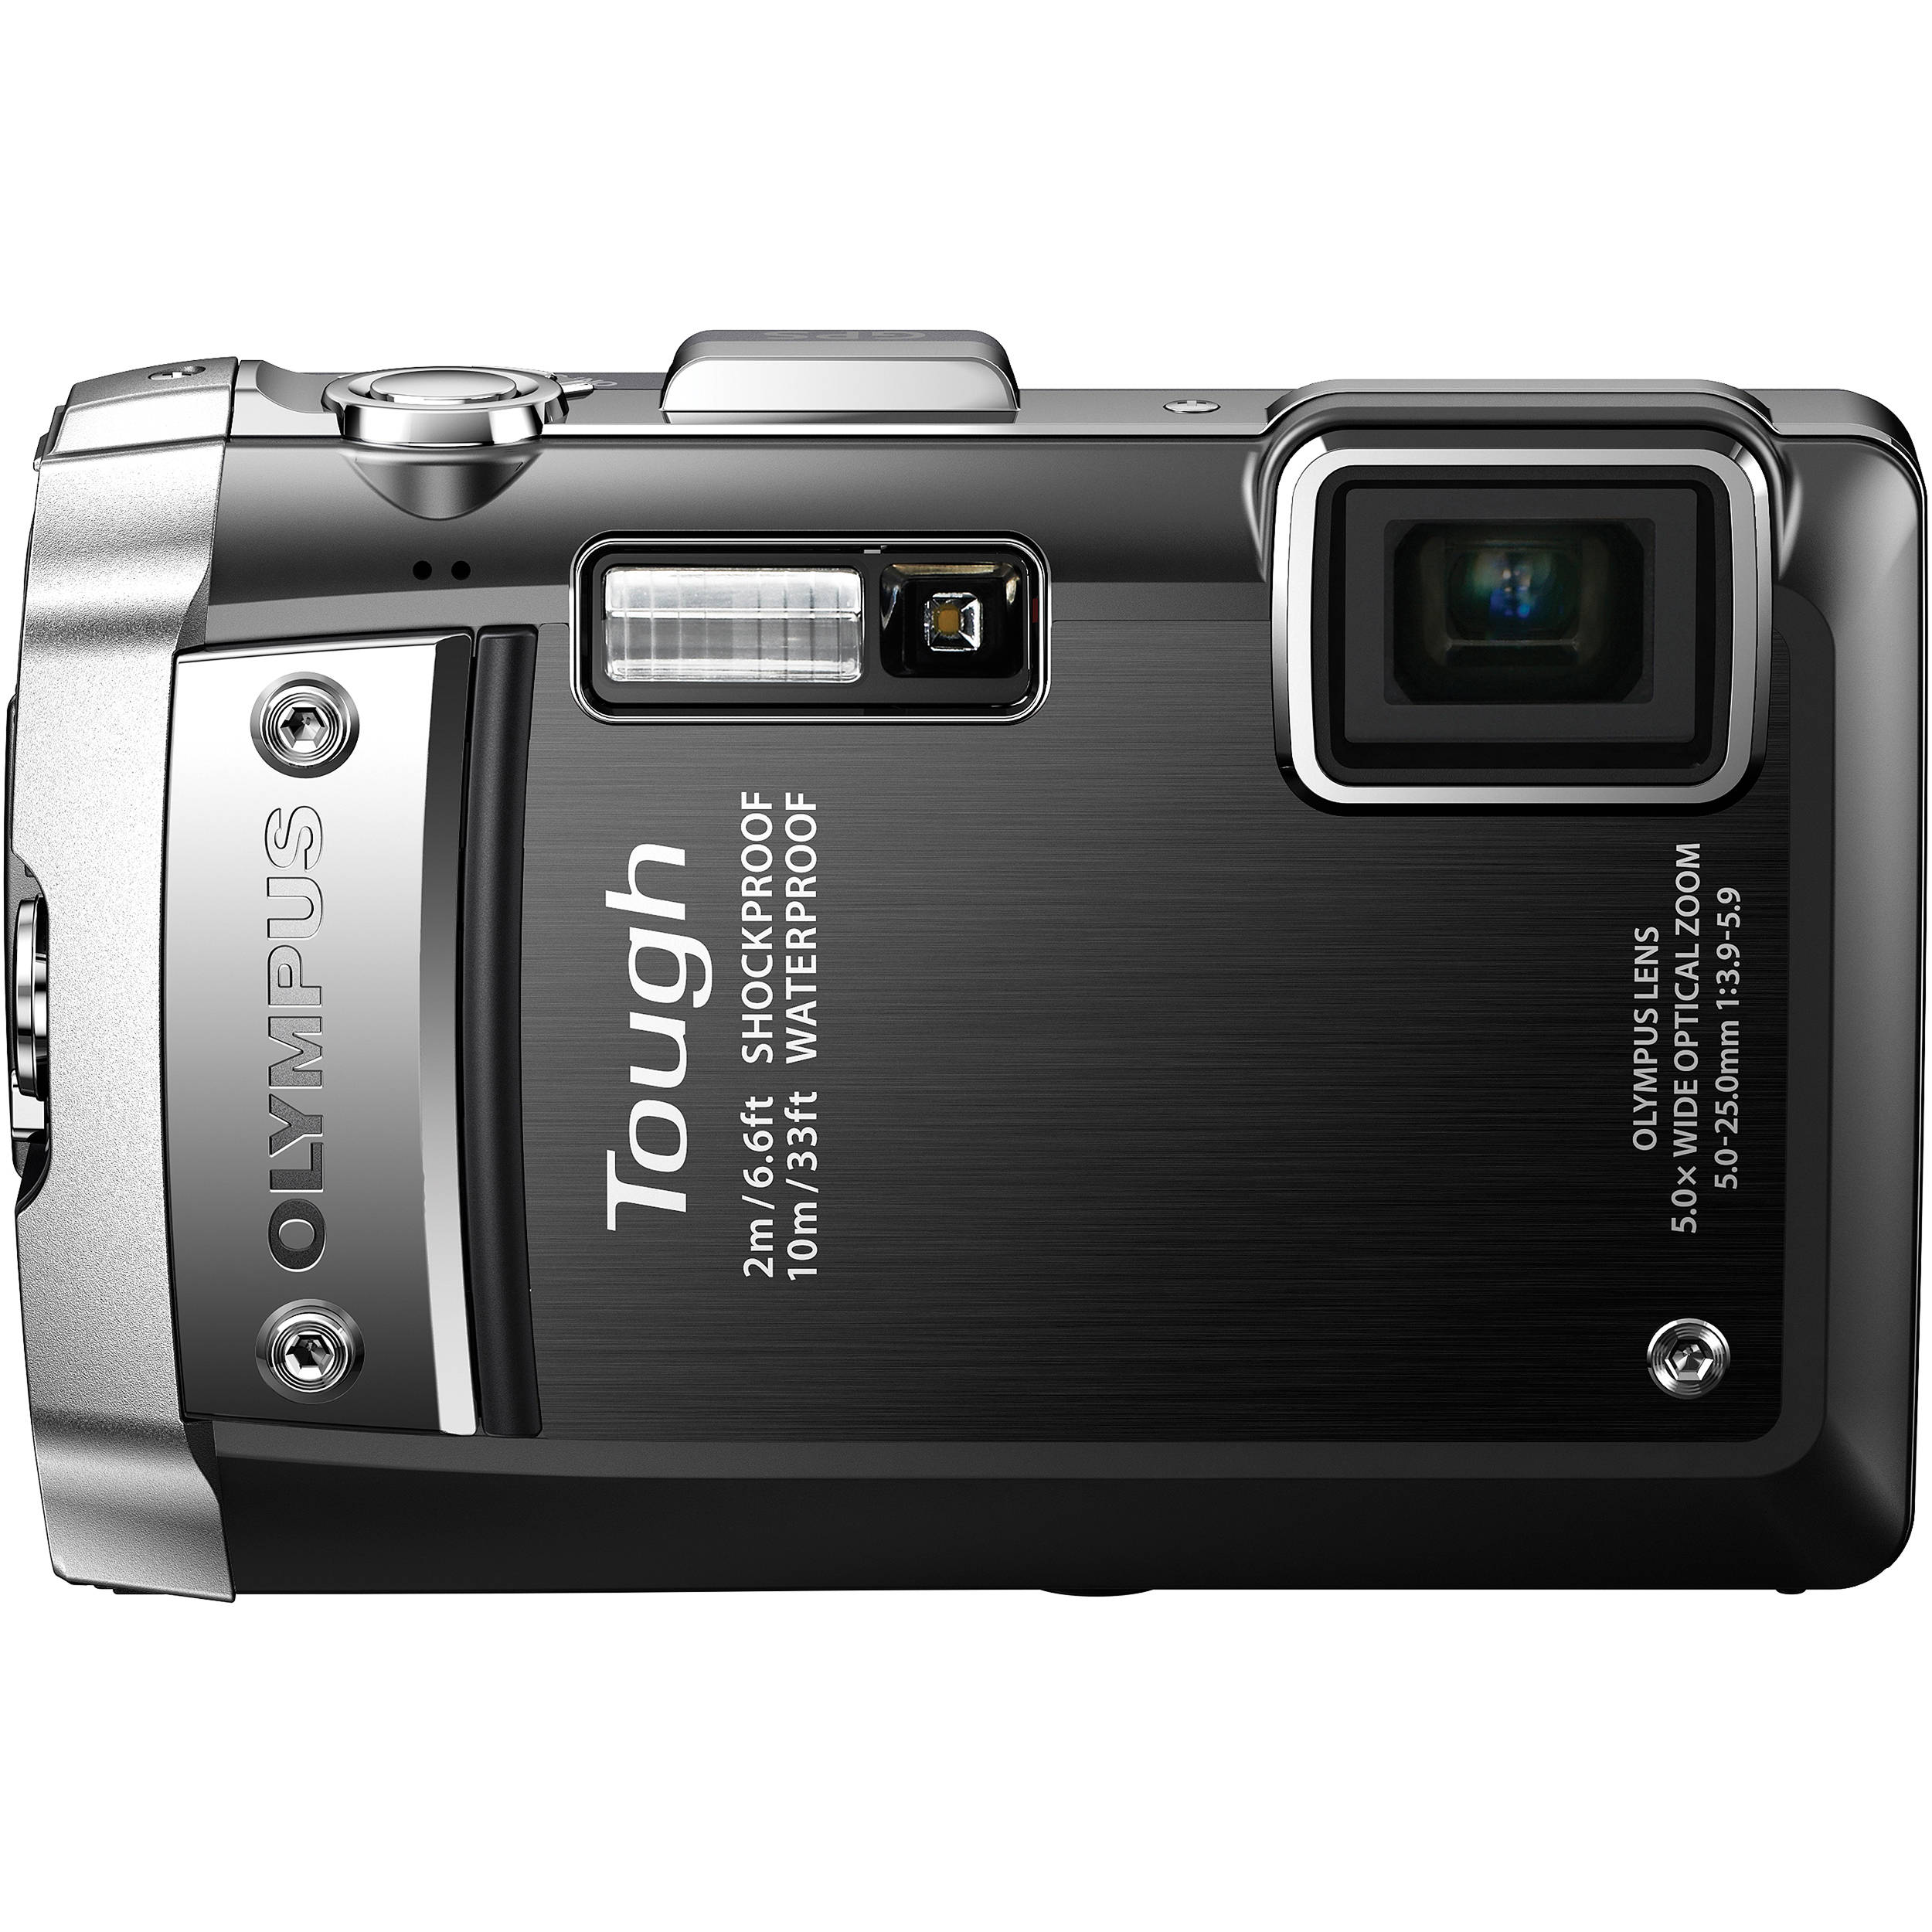 Olympus Digital Camera: Olympus Tough TG-810 Digital Camera (Black) 228100 B&H Photo